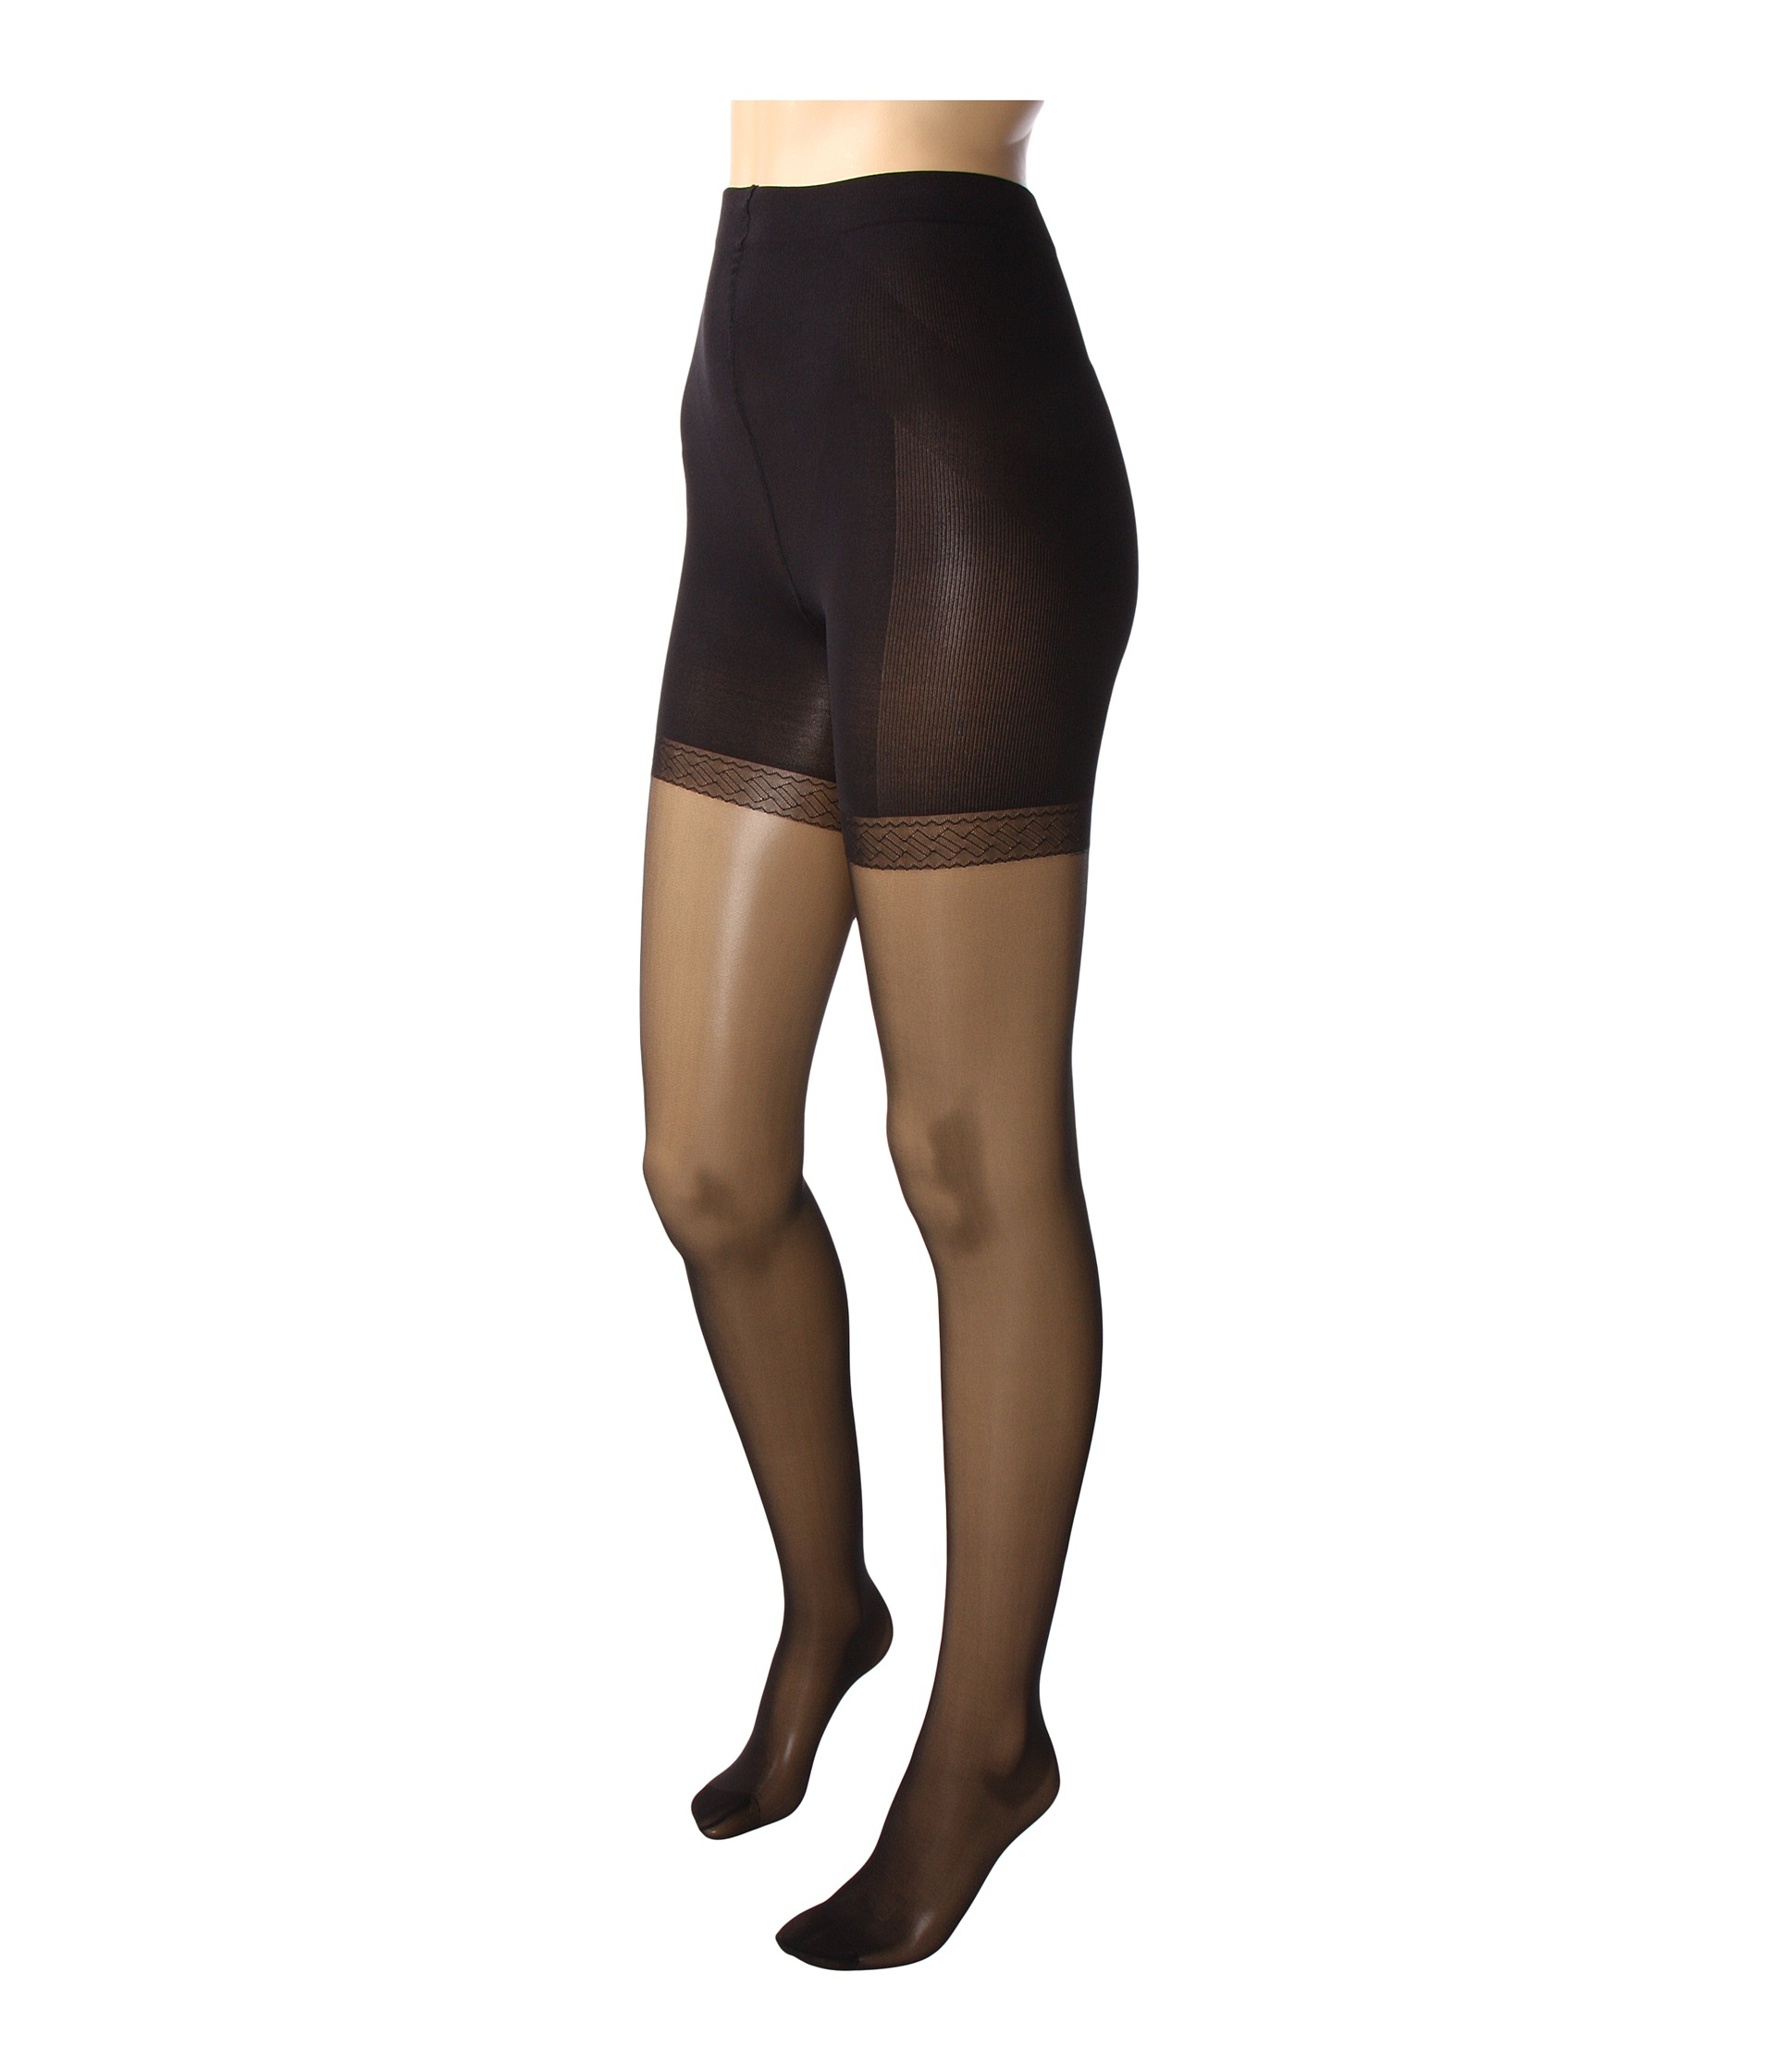 90d11b86 Wolford Synergy 20 Push-up Panty Tights in Black - Lyst